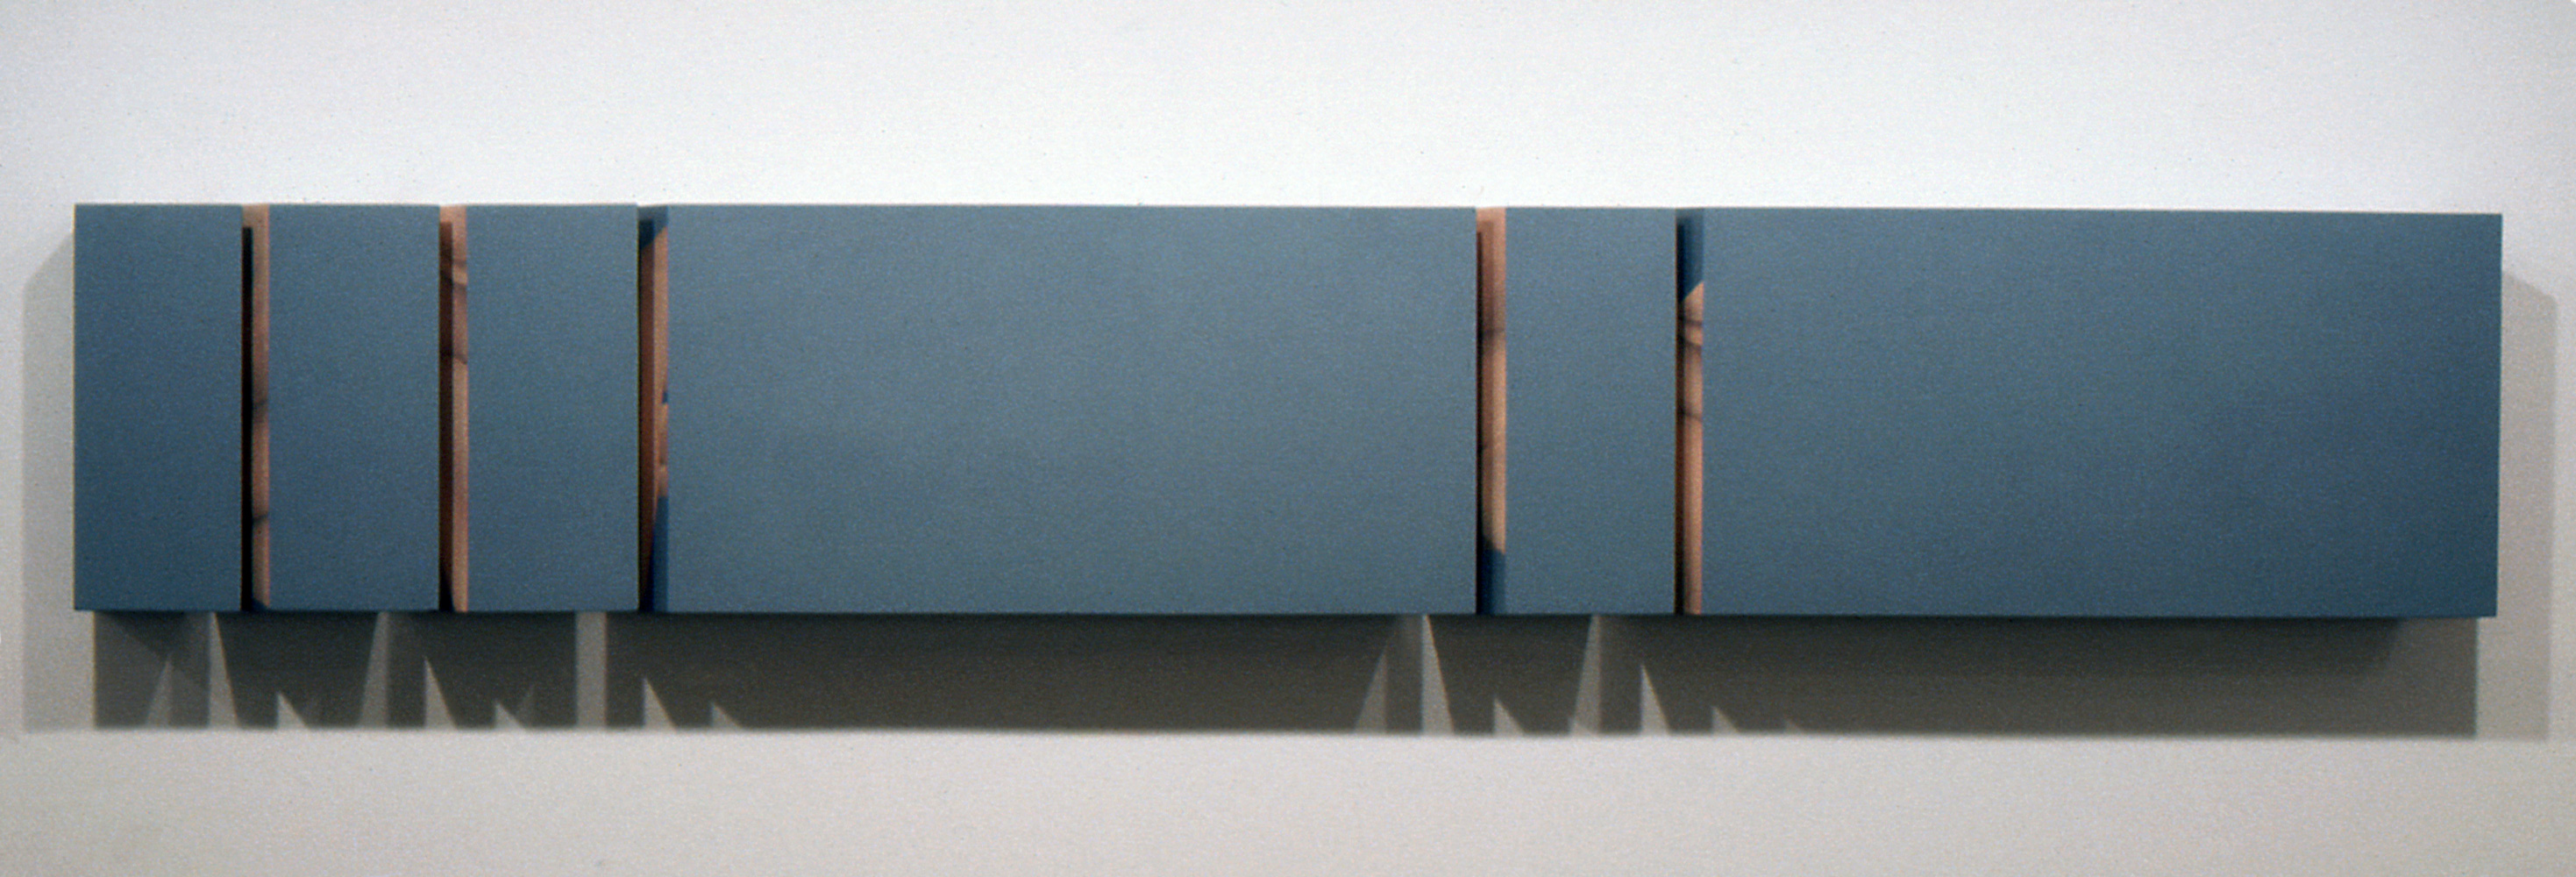 1974 